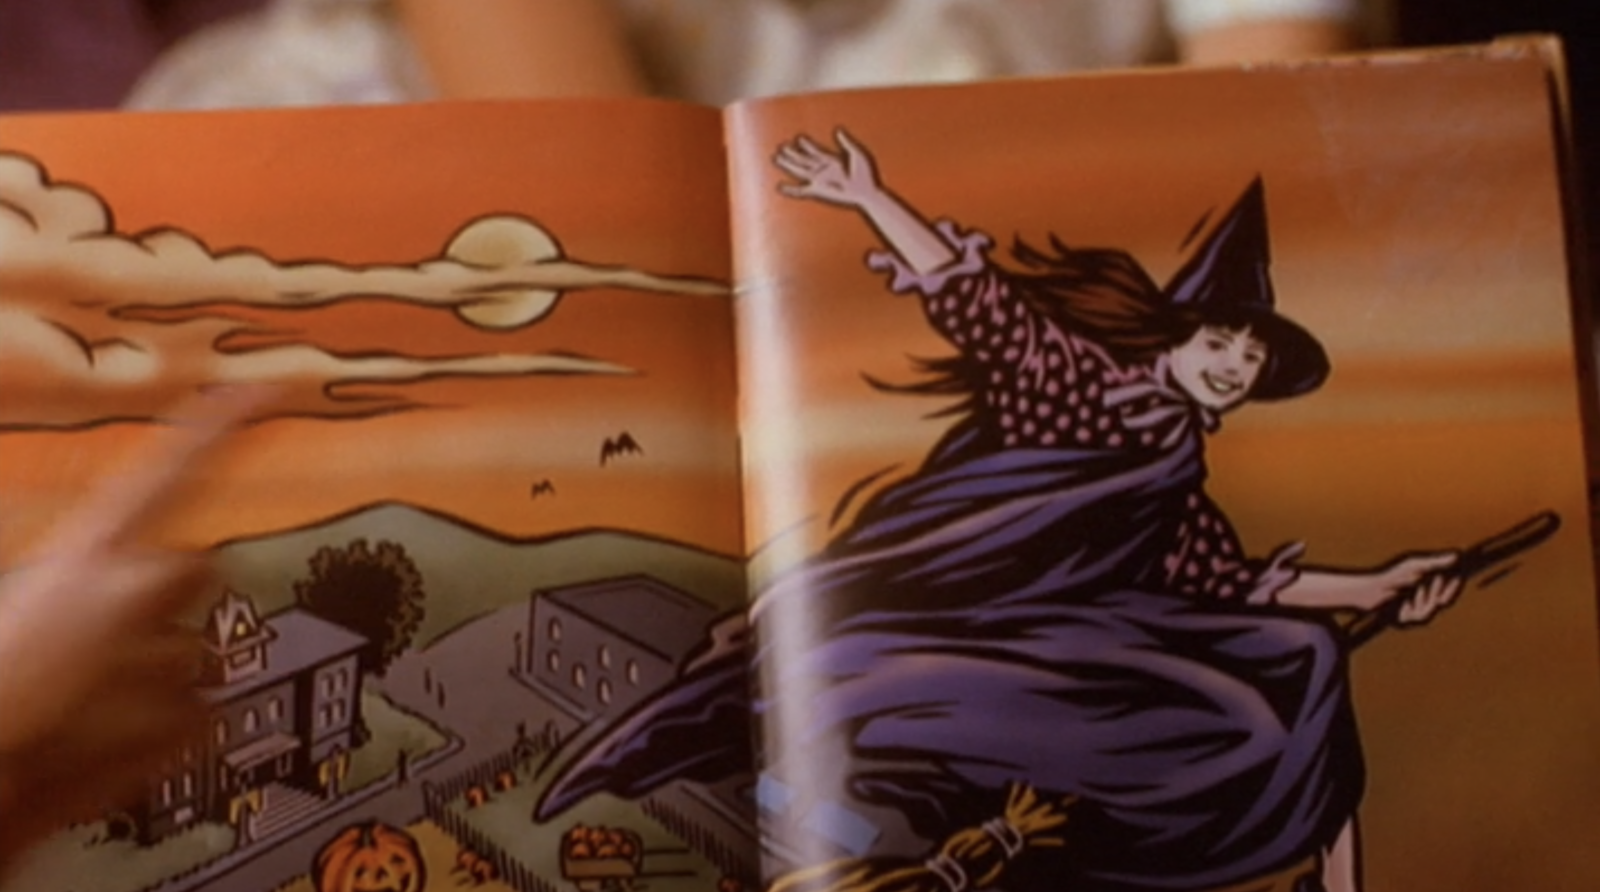 It was unfortunately never made for the public, but Kimberly co-wrote and co-illustrated her own Halloween book called Poppin's Pumpkin Patch Parade.